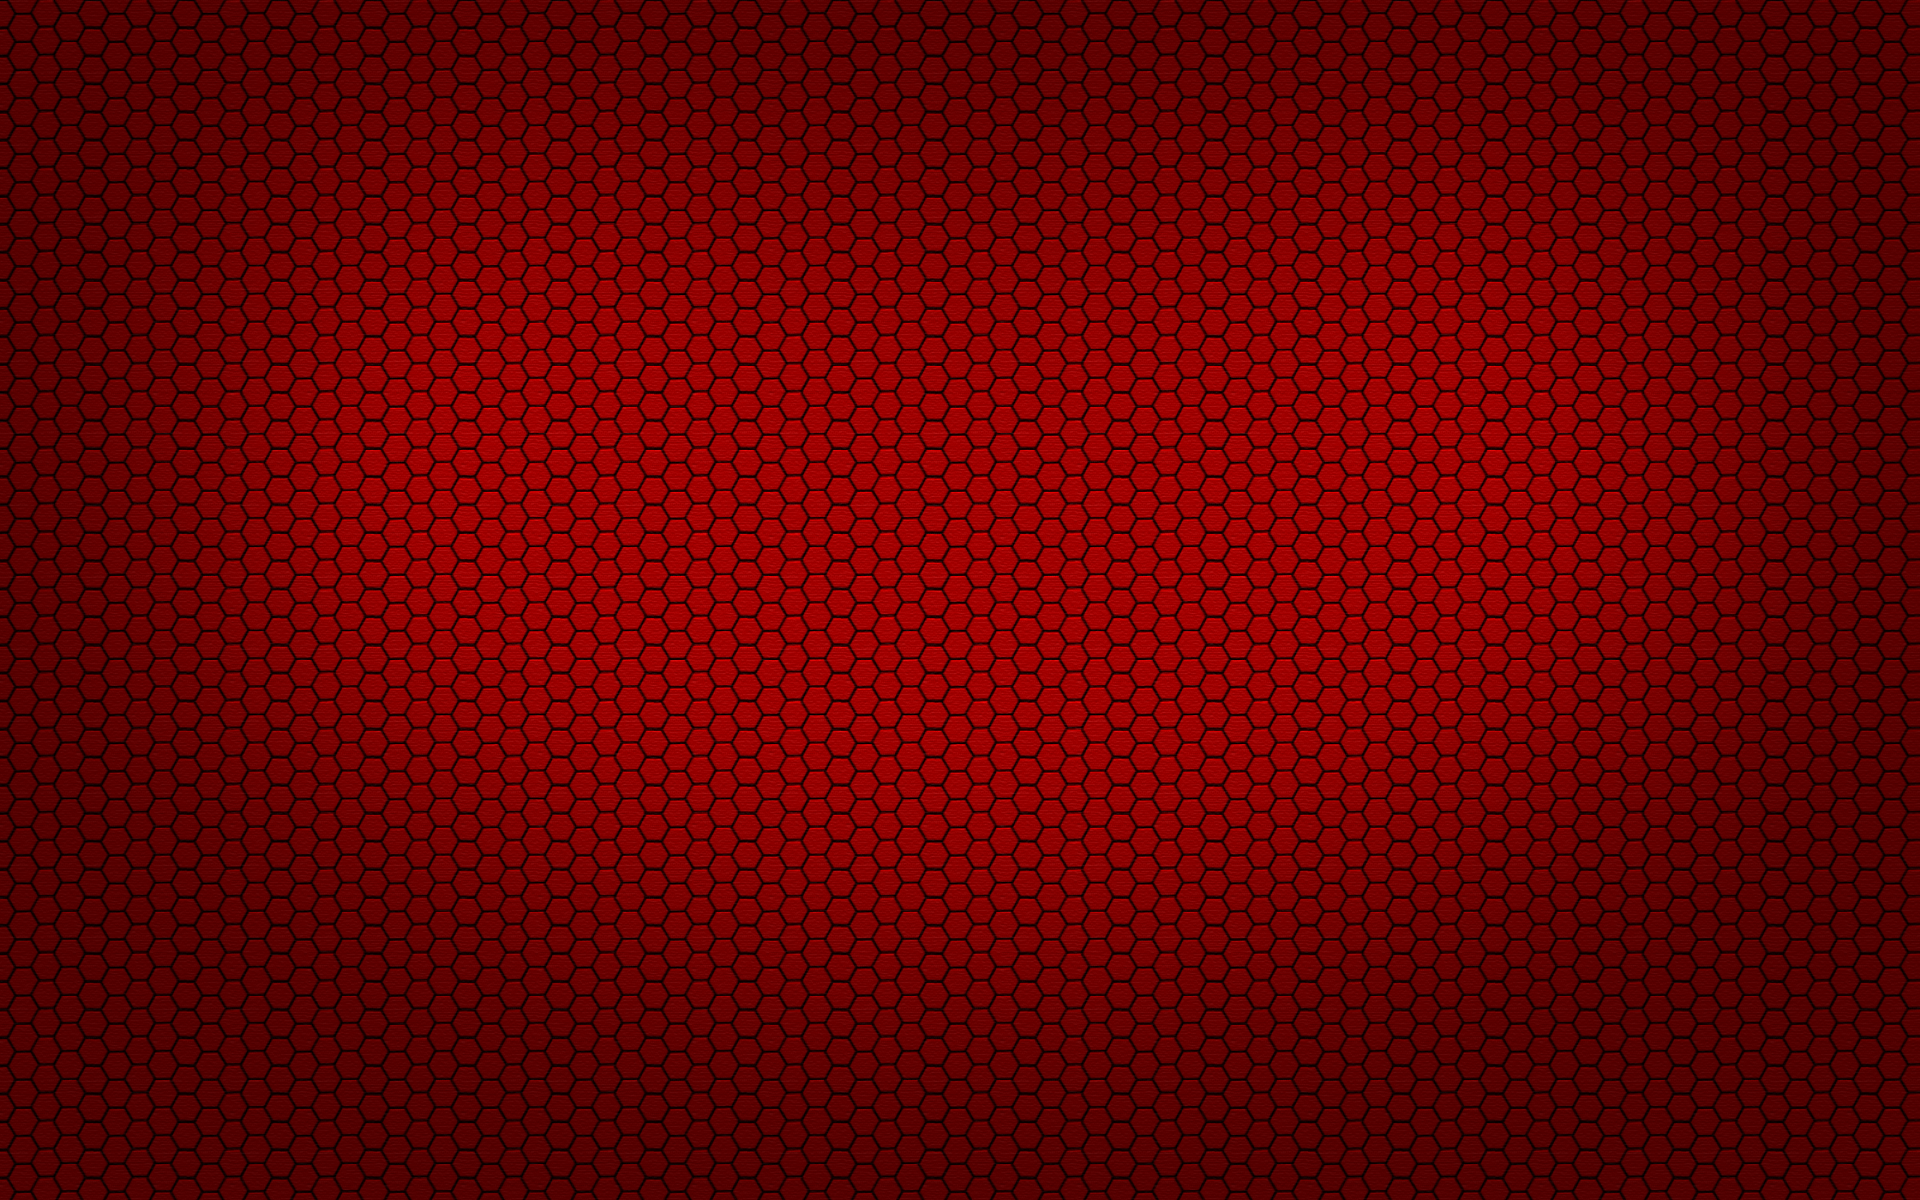 download red patterns wallpaper - photo #1